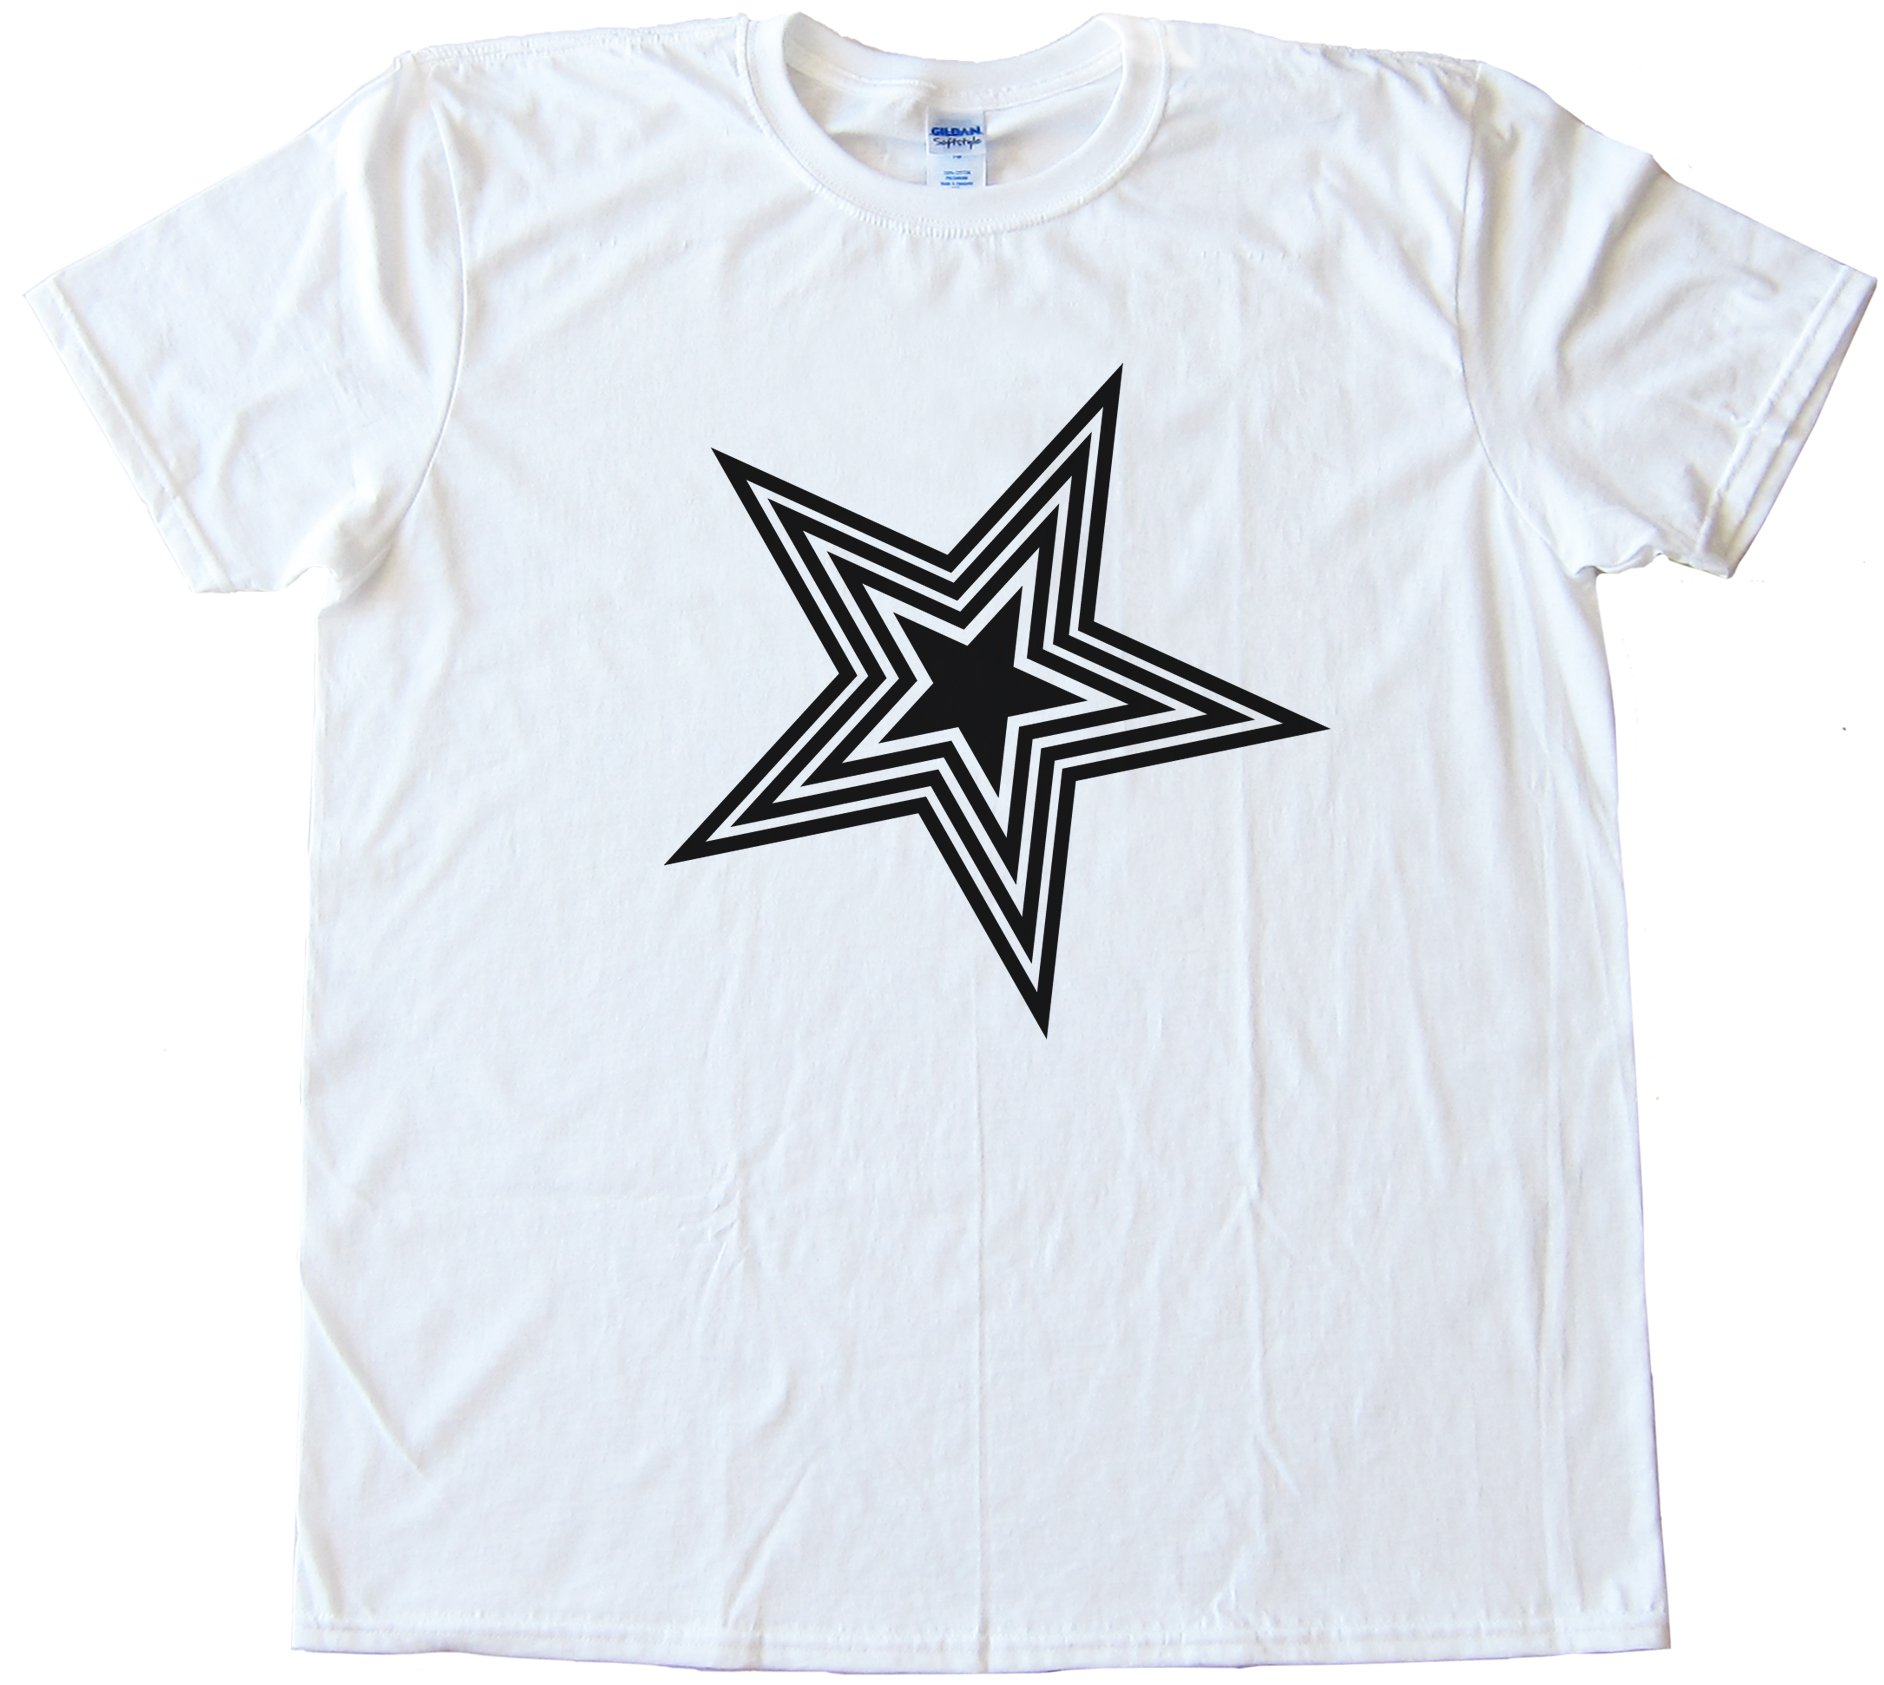 Jersey Shore Star Tv Show Tee Shirt